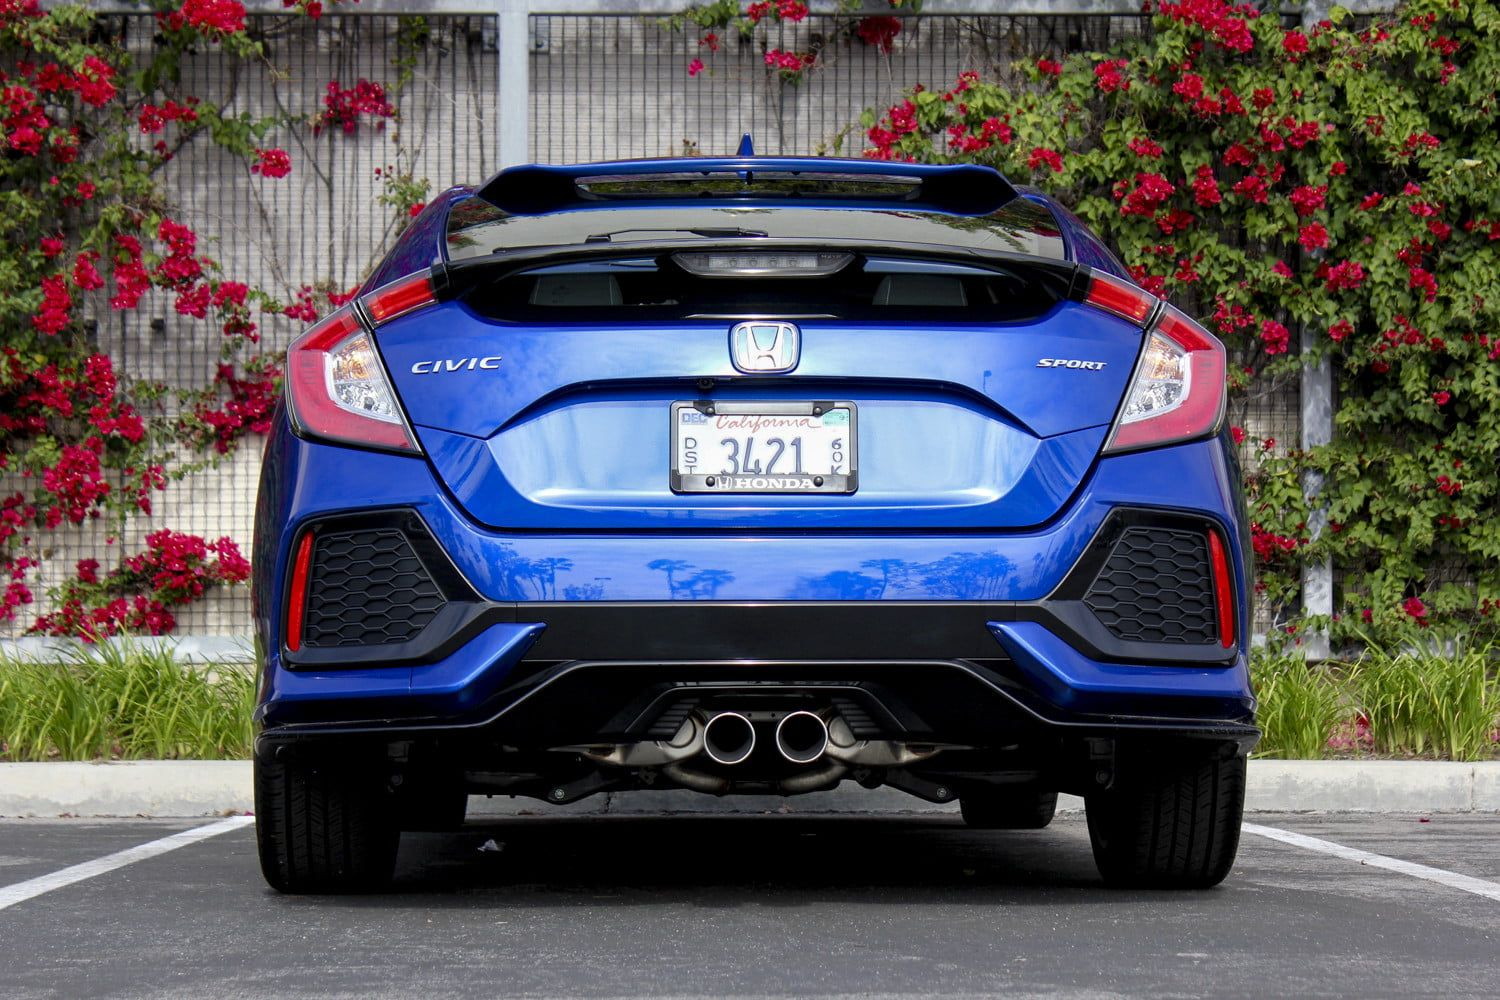 After a 12year hiatus, the Civic Hatchback is a compact